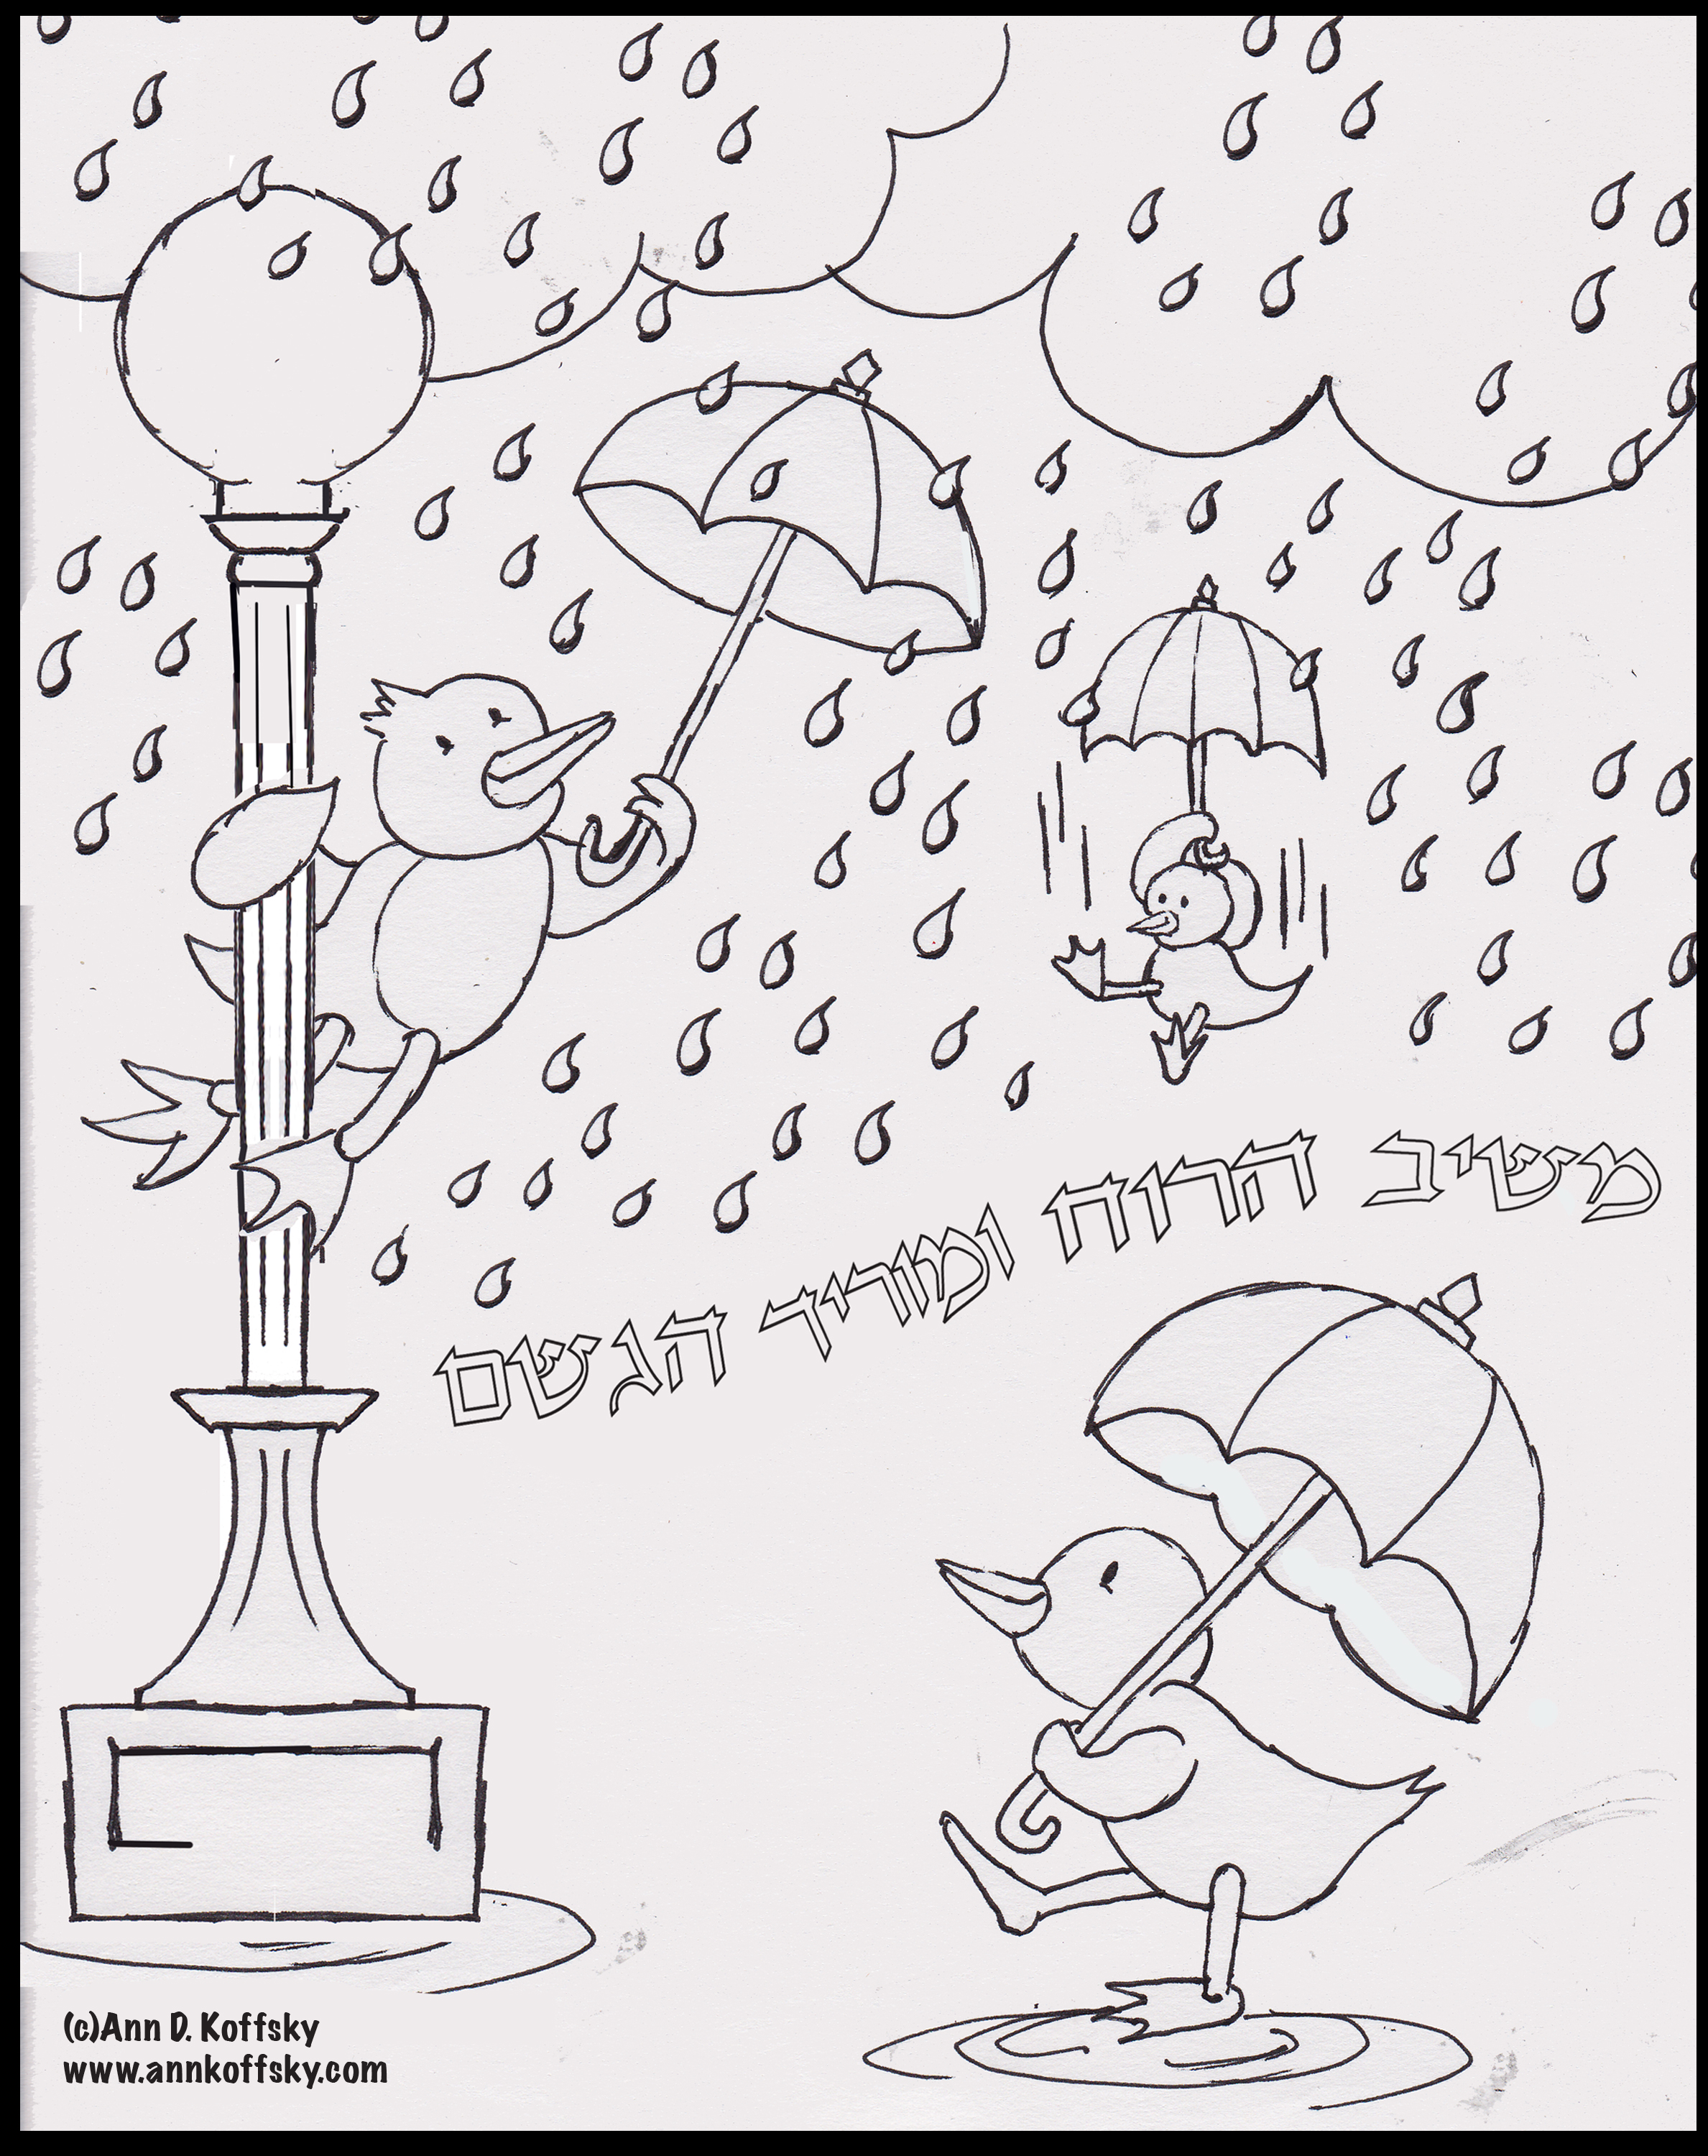 Free Rainy Season Images For Kids Download Free Clip Art Free Clip Art On Clipart Library